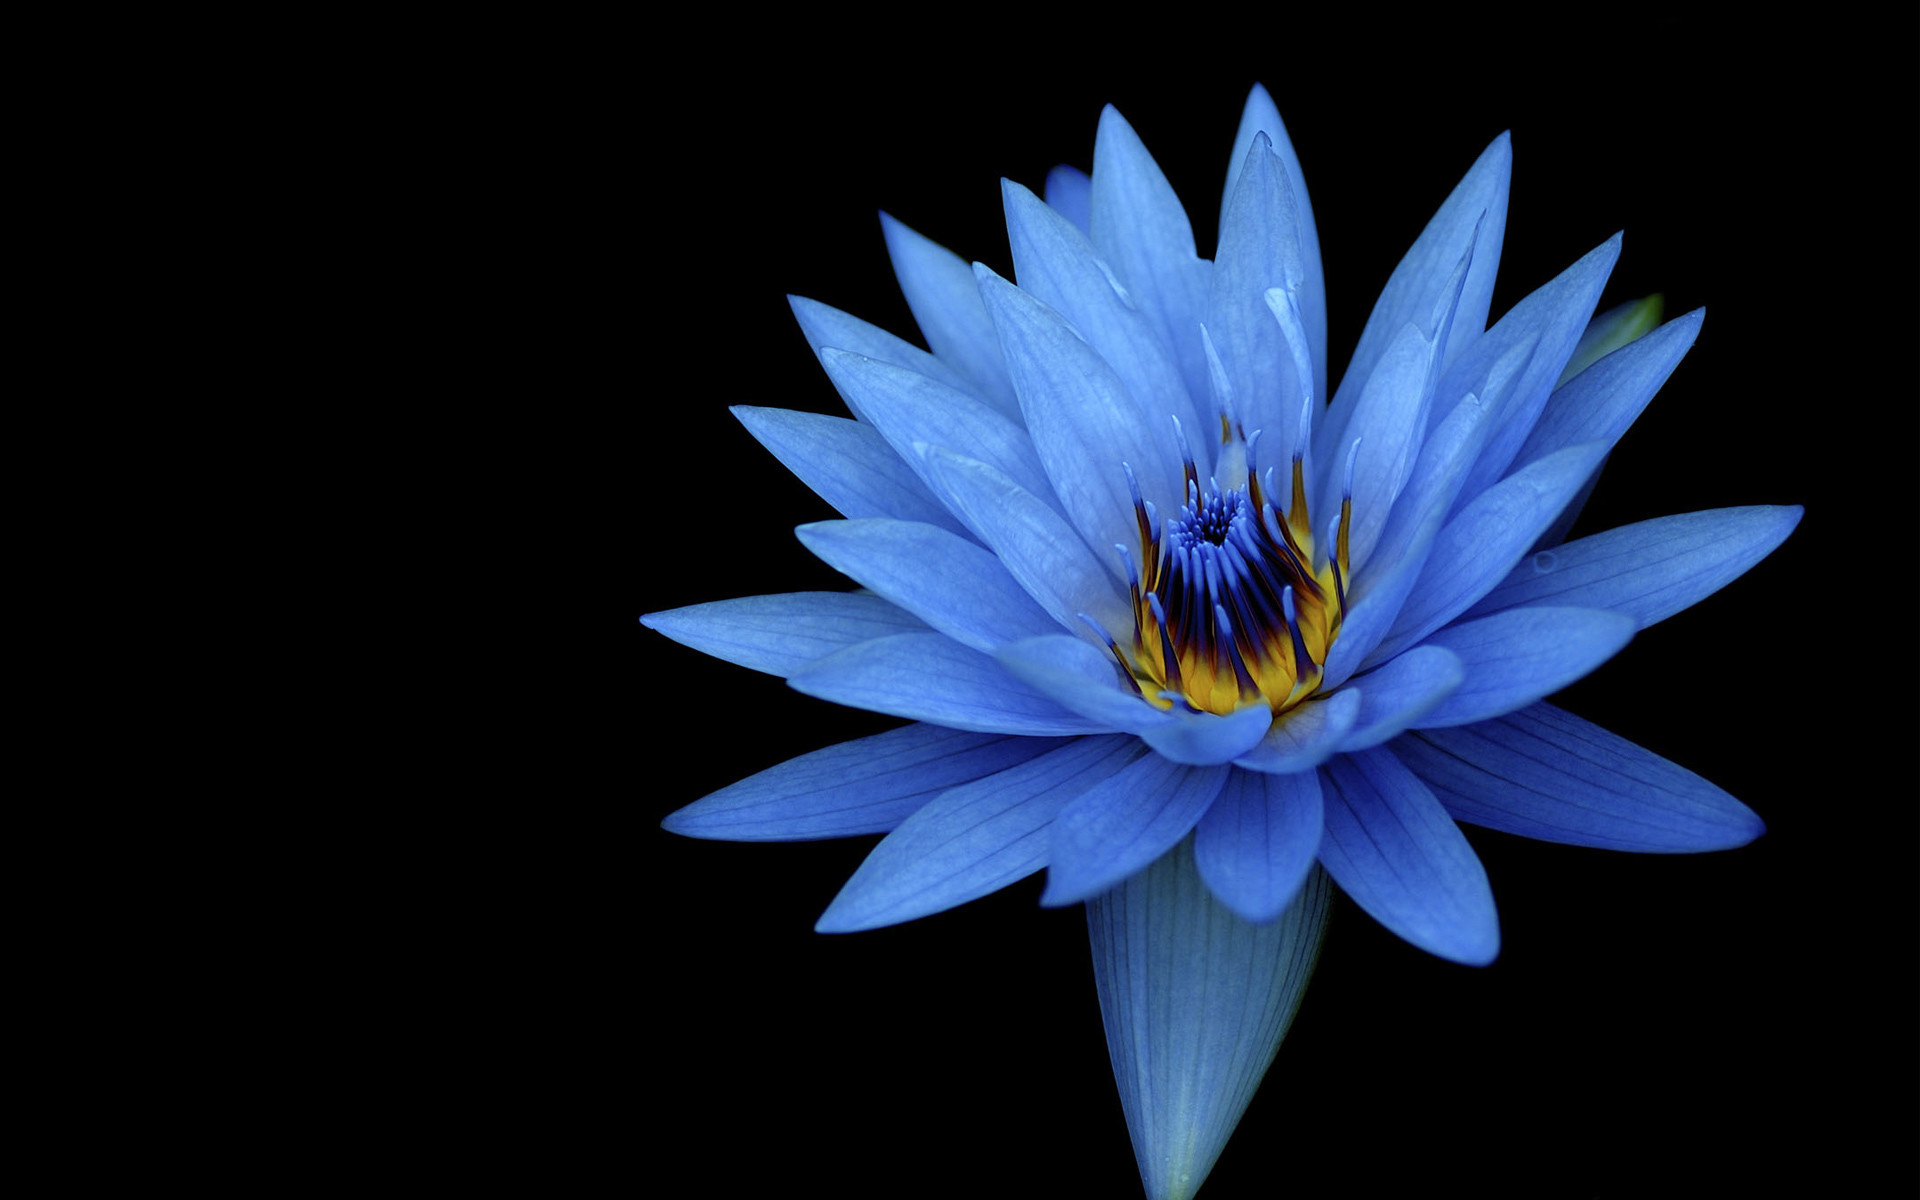 Res: 1920x1200, Tags: Blue flower ...